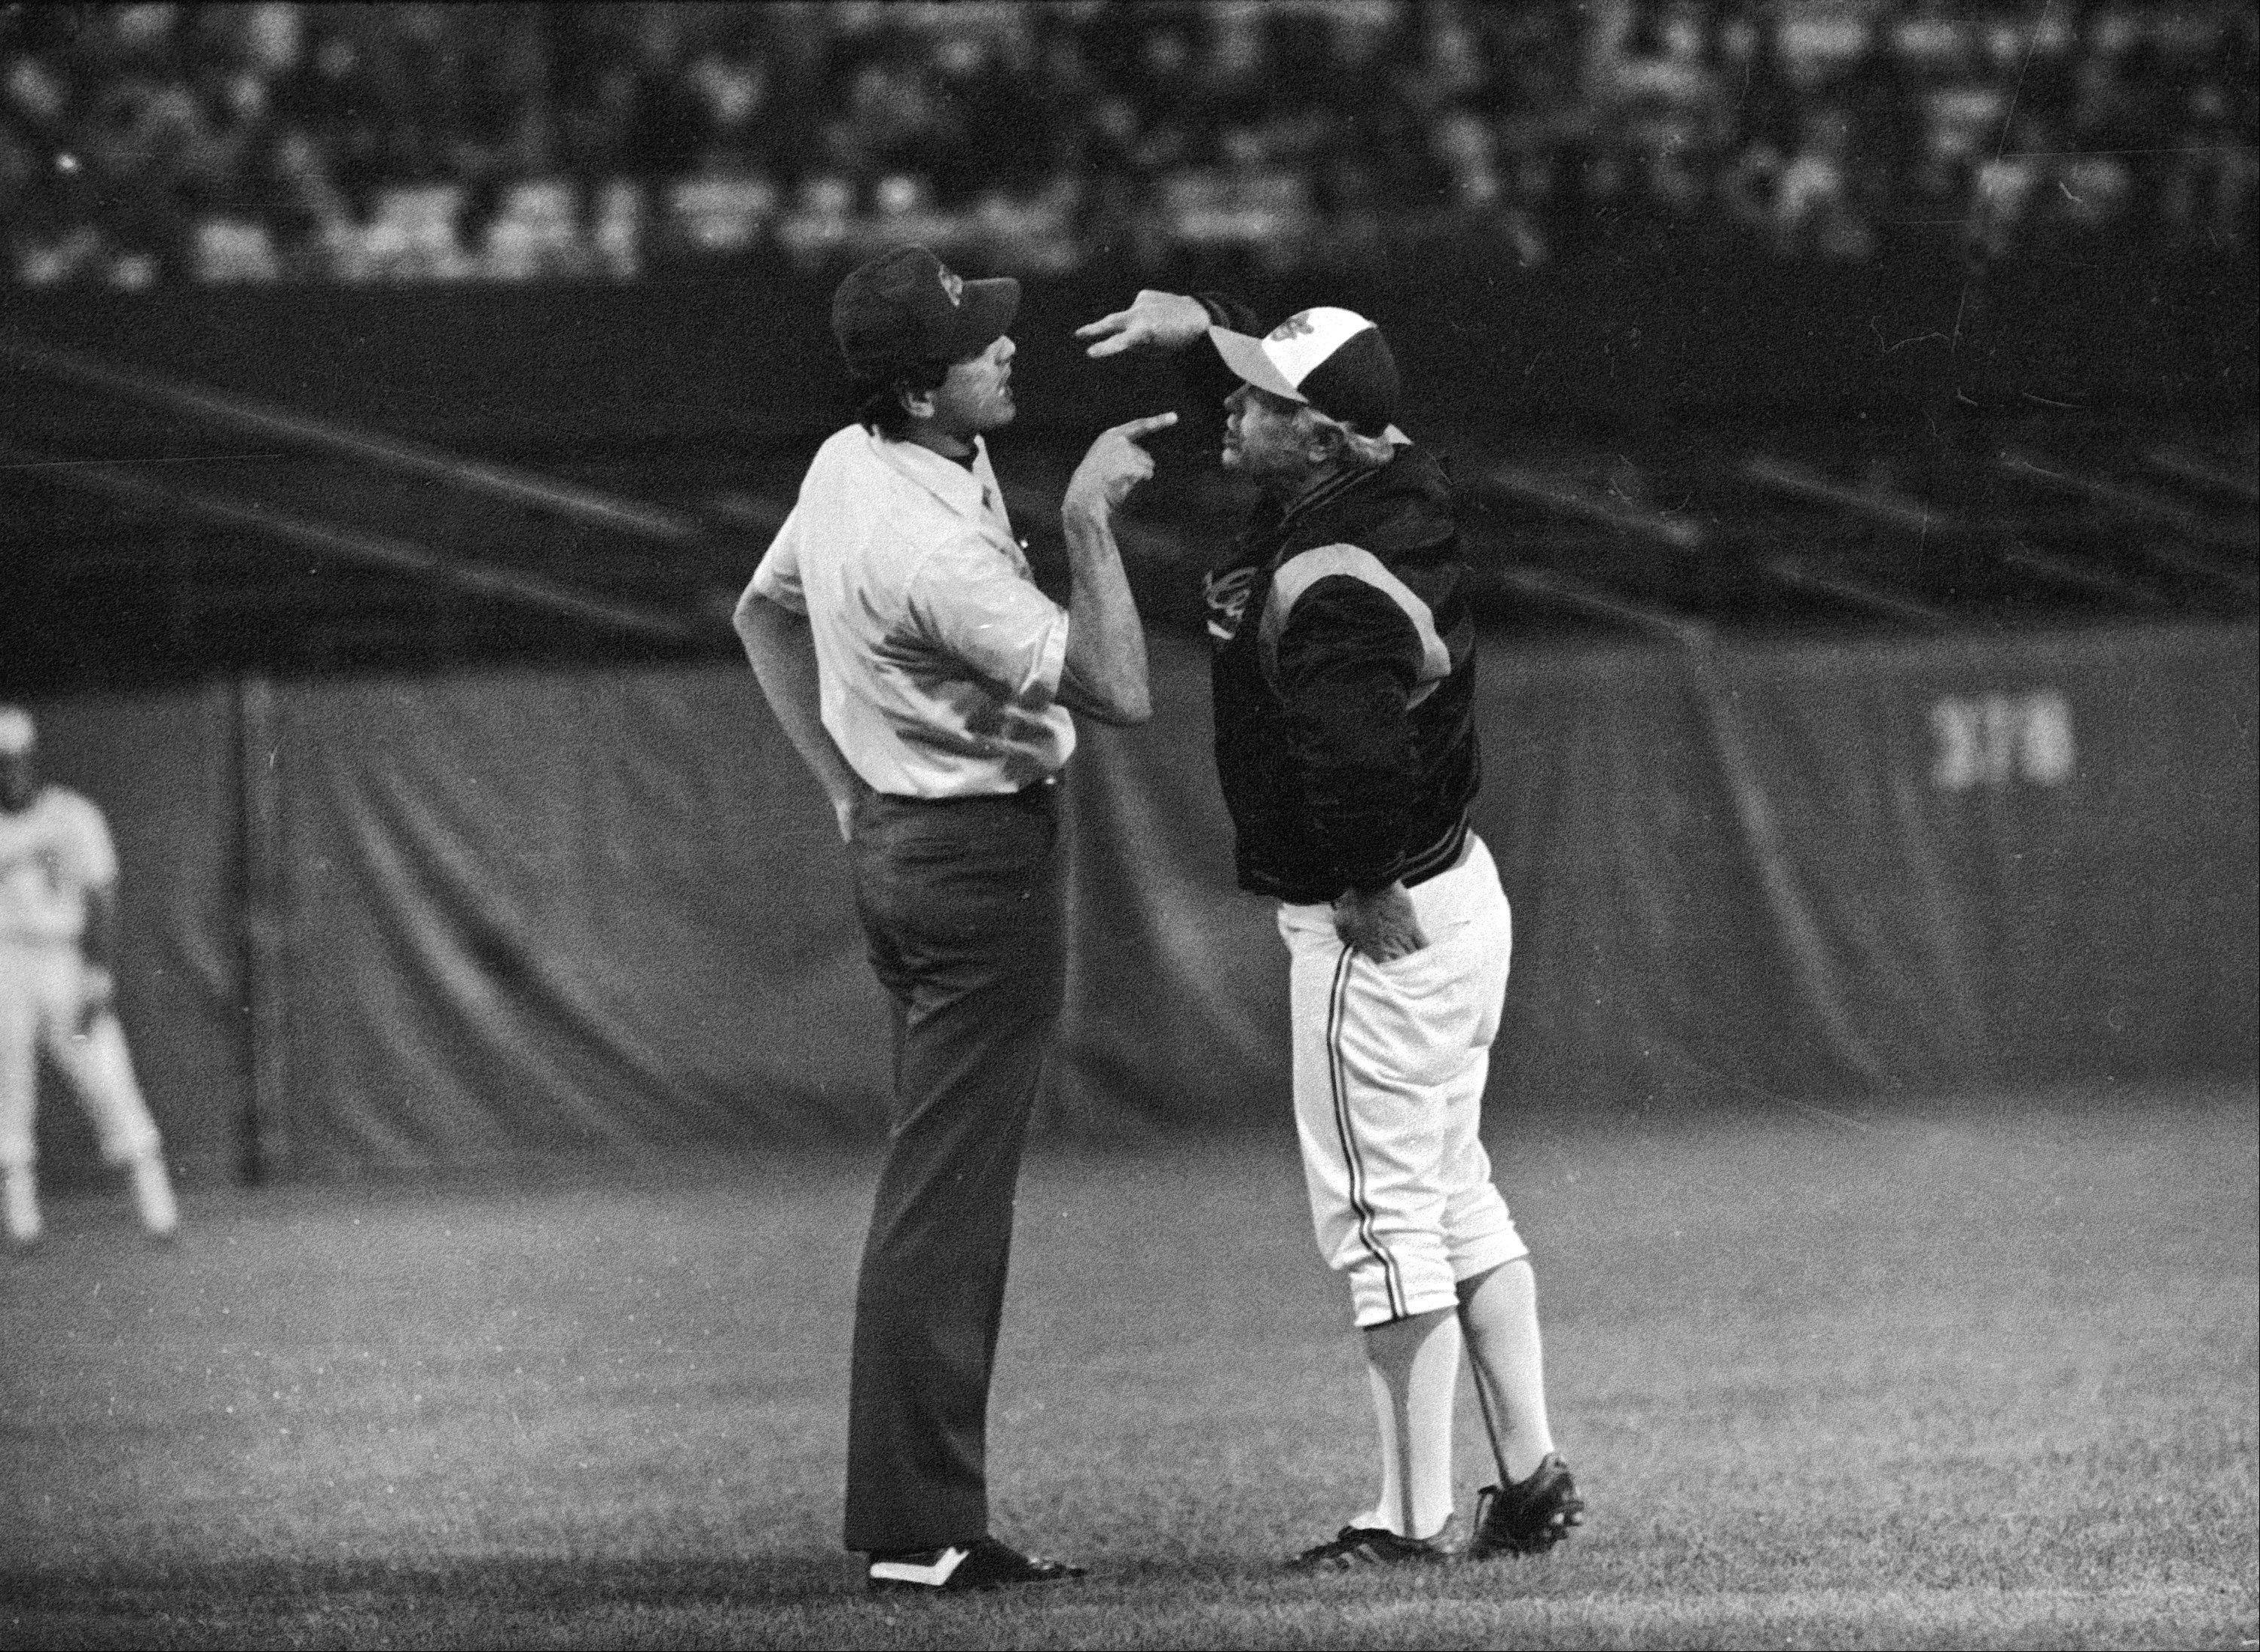 In this Aug. 16, 1979 file photo, Baltimore Orioles manager Earl Weaver argues with third base umpire Steve Palermo, after Palermo ejected him during the second inning of a baseball game against the Kansas City Royals, in Baltimore. Weaver, the fiery Hall of Fame manager who won 1,480 games with the Baltimore Orioles, has died, the team announced Saturday, Jan. 19, 2013. He was 82.